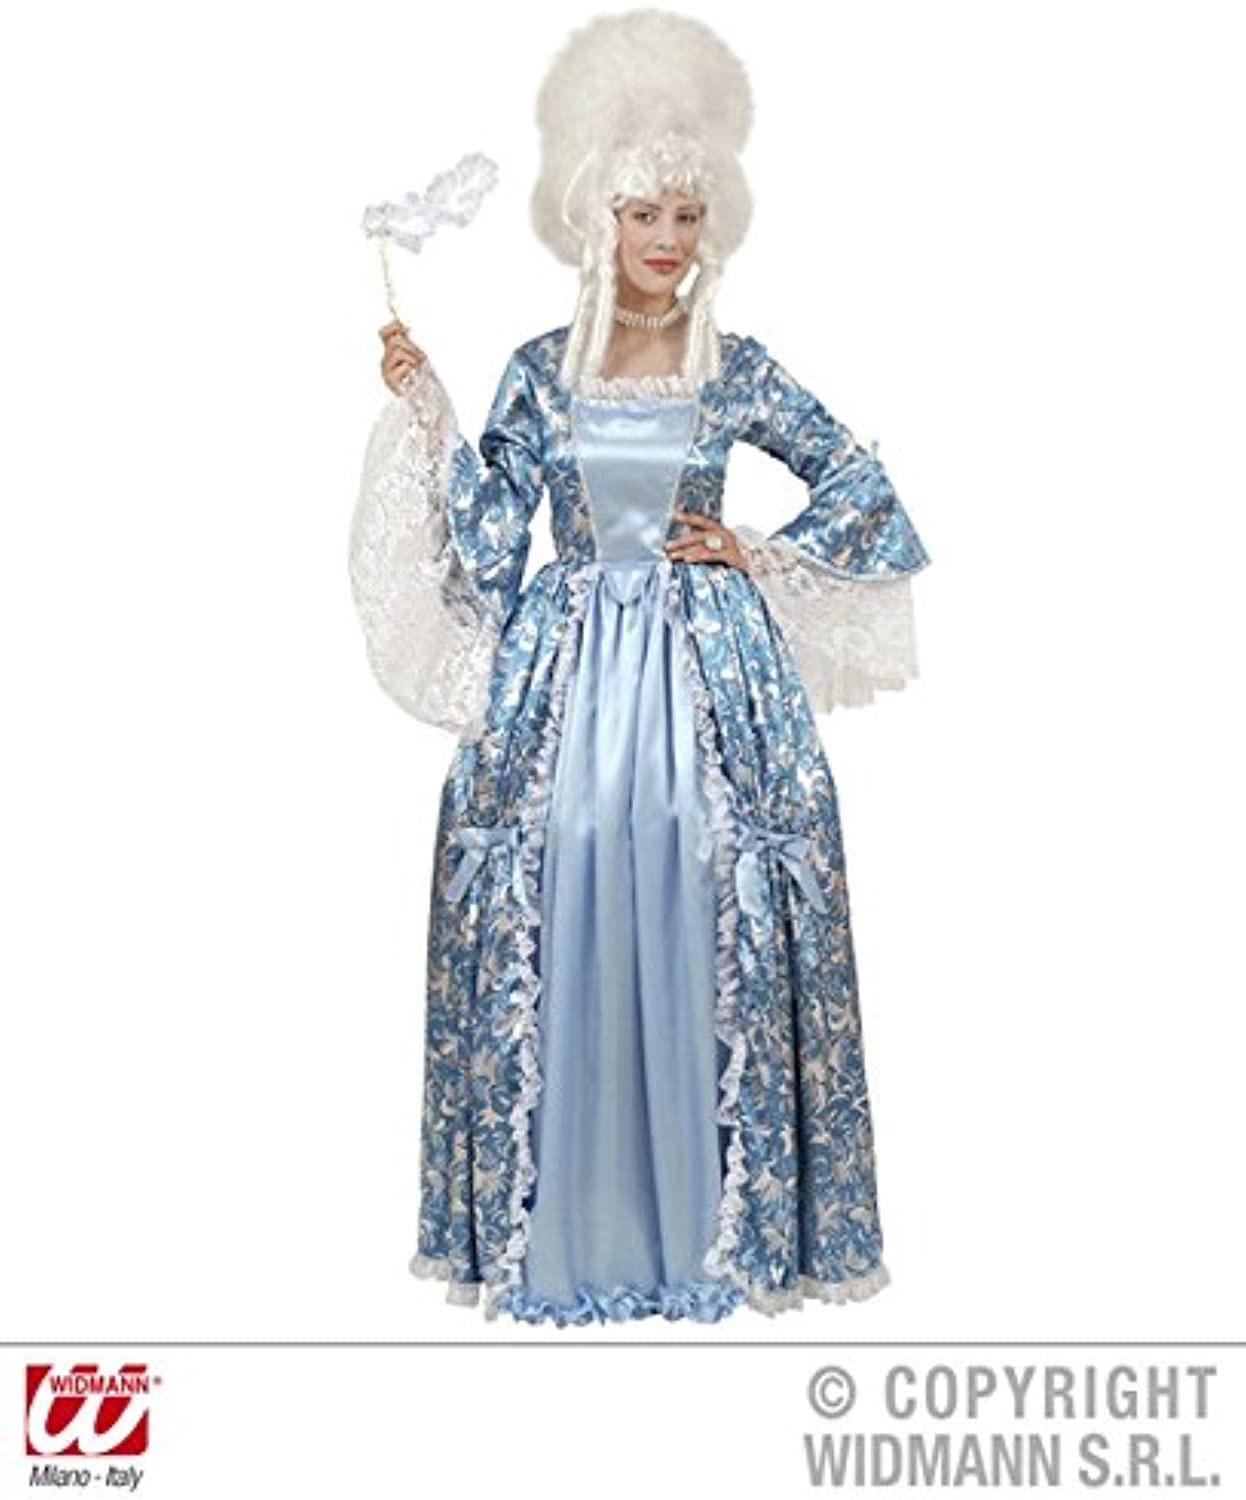 L Ladies MARQUISE DRESS blueE SILVER Accessory for Regency Court Princess Queen Fancy Dress Large UK 1416 Adults Female